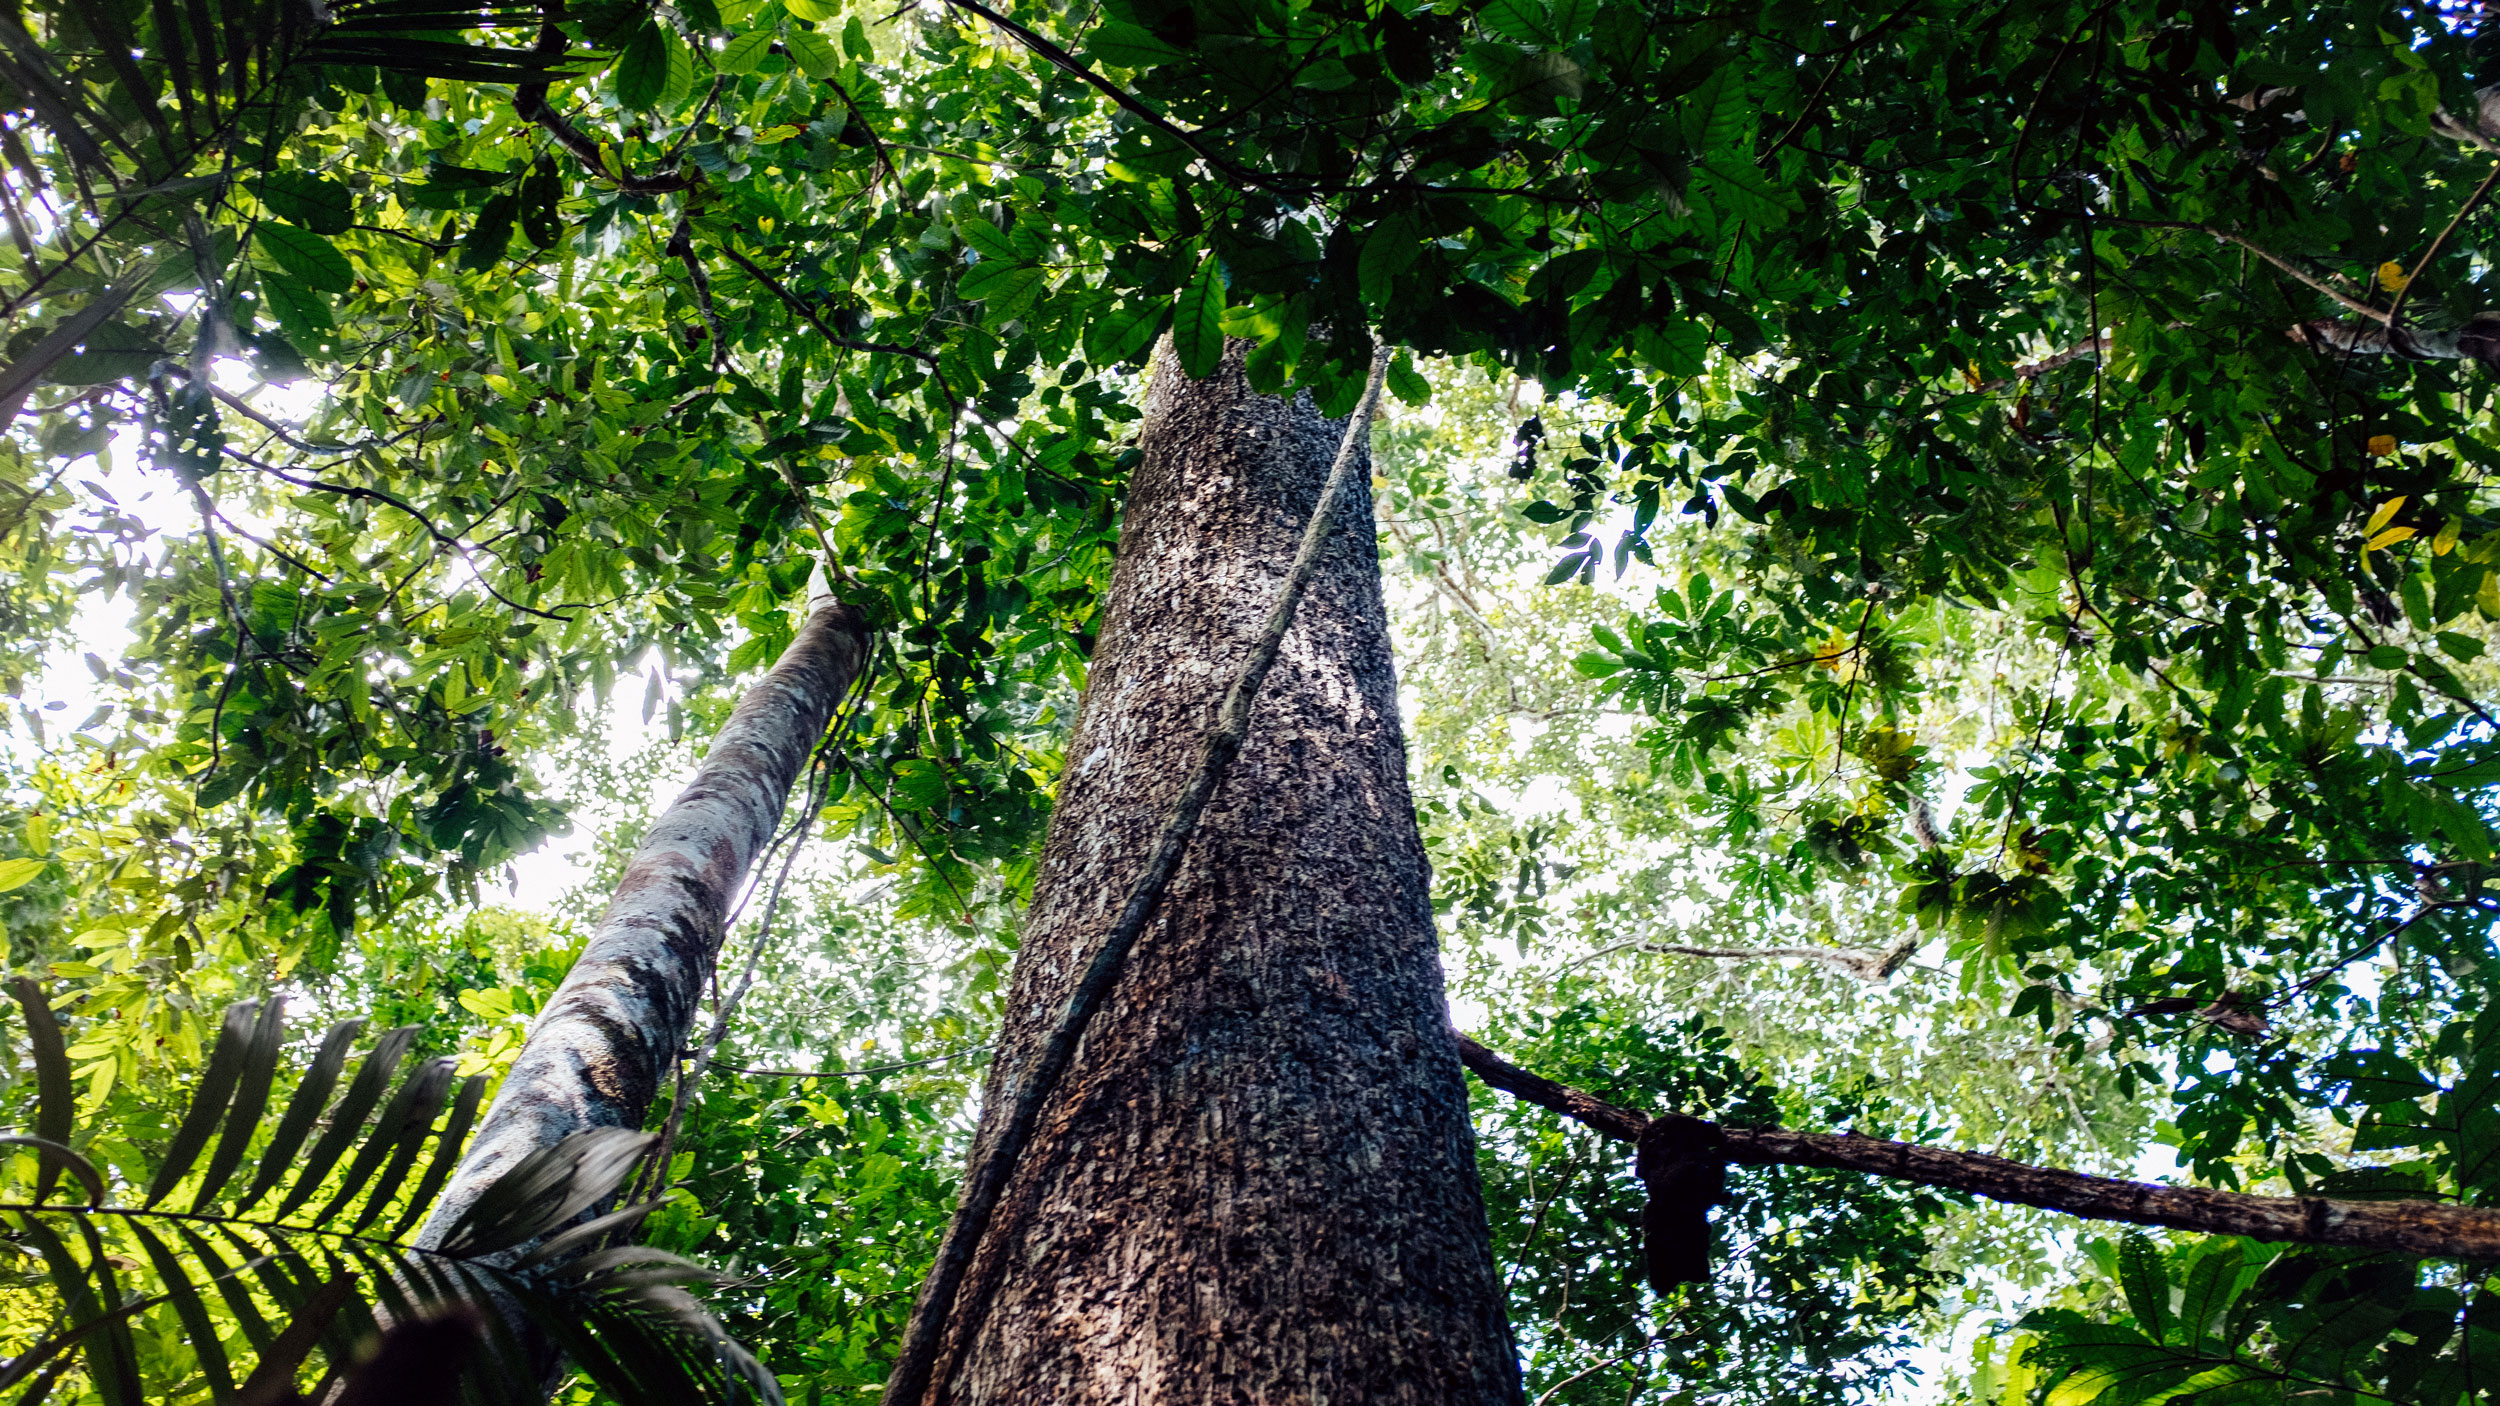 A Third Way To Save The Amazon Make Trees More Valuable